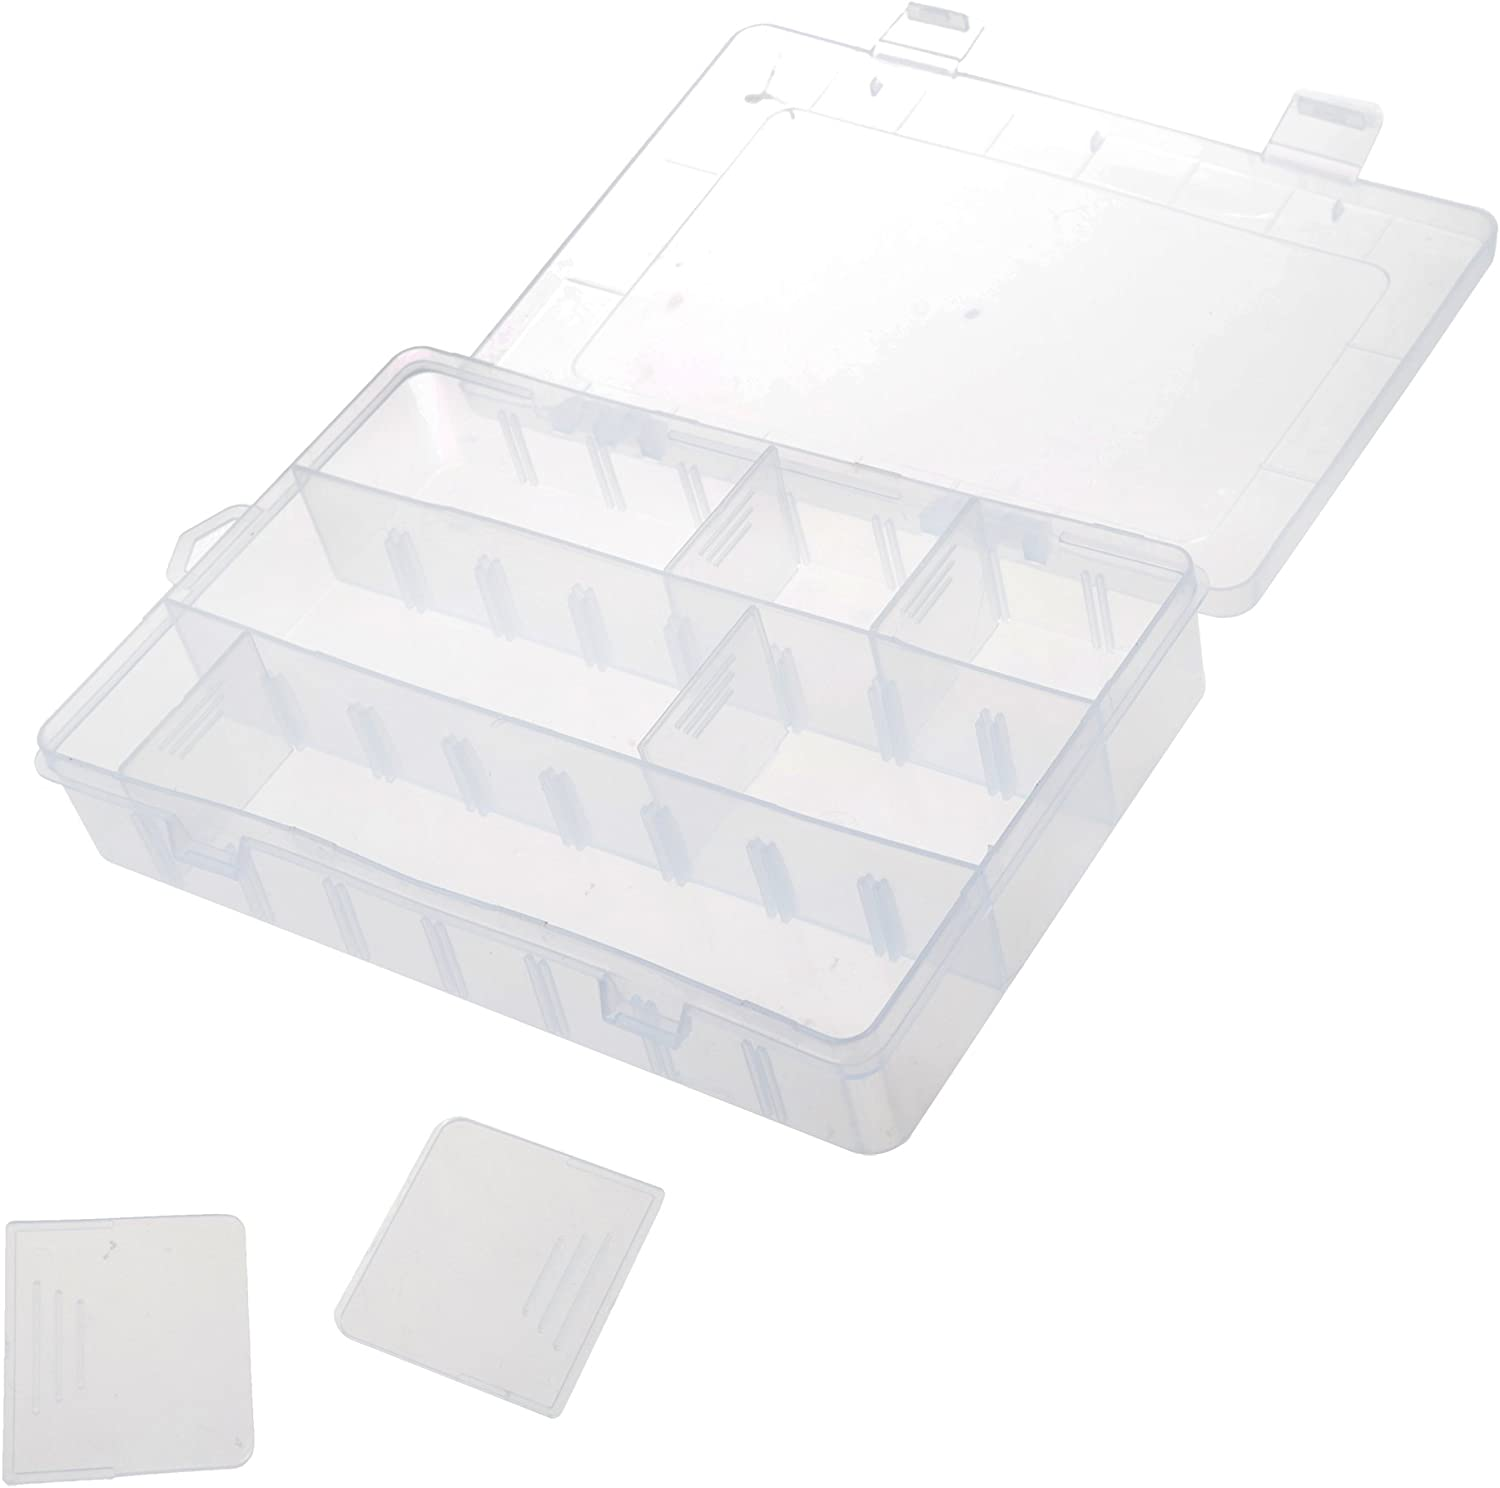 BCP Clear Plastic Art Craft Storage Container Storage Box Case with 4-Divider